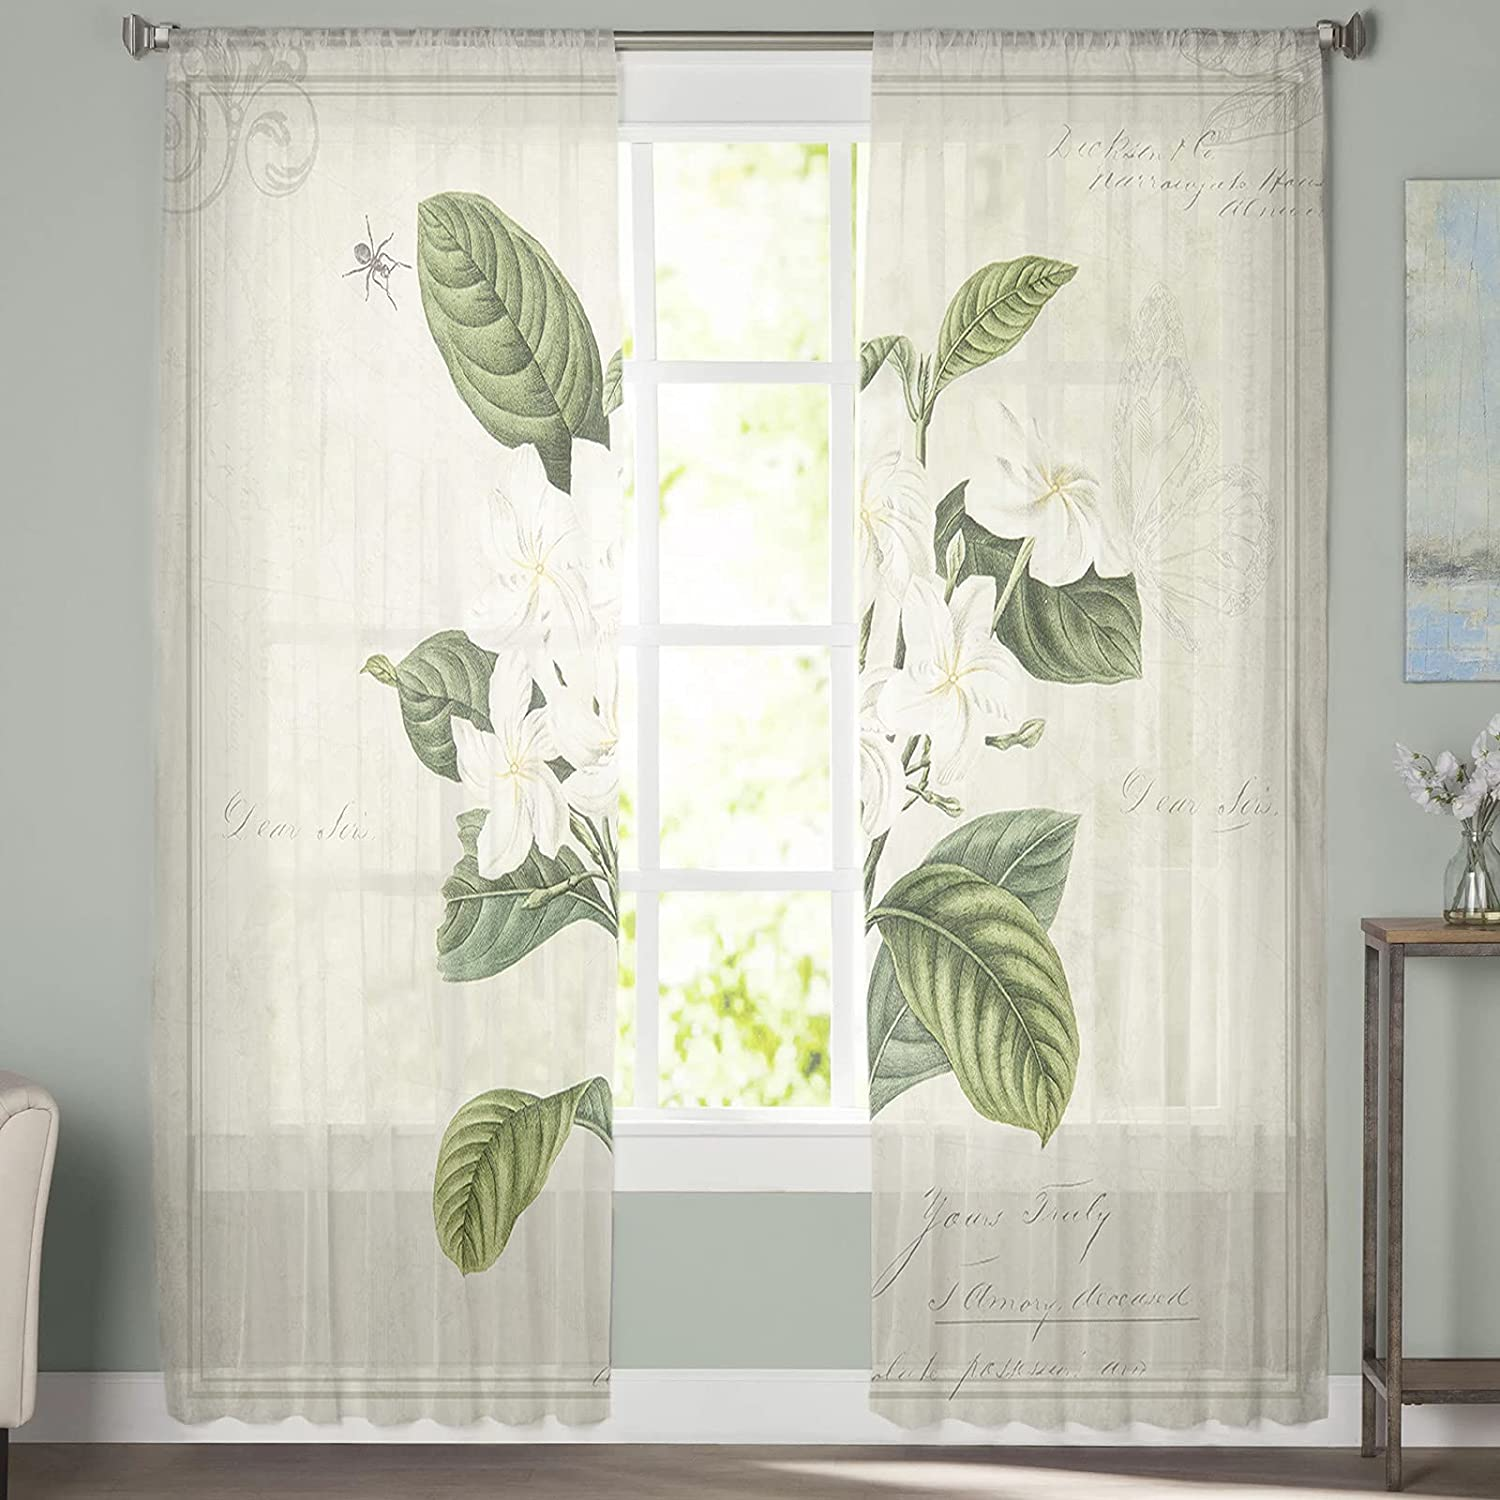 2 Pieces Minneapolis Mall Window Sheer Curtains inch Flower 52x72 Semi Art Gifts